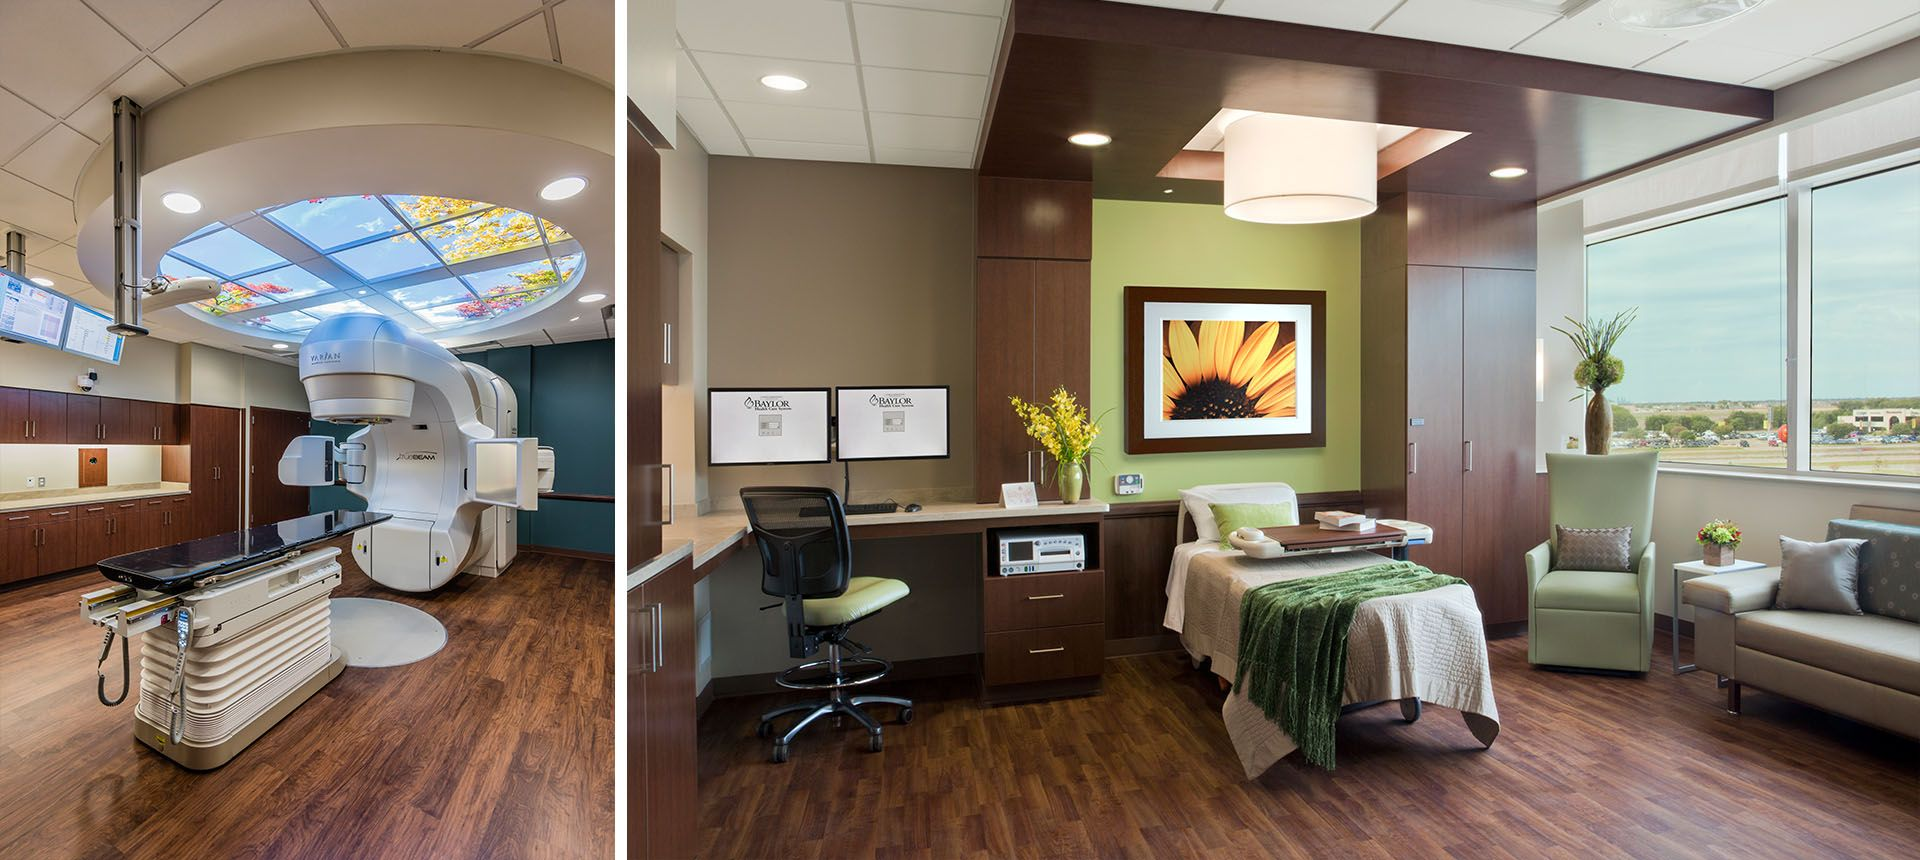 charles county health department dental